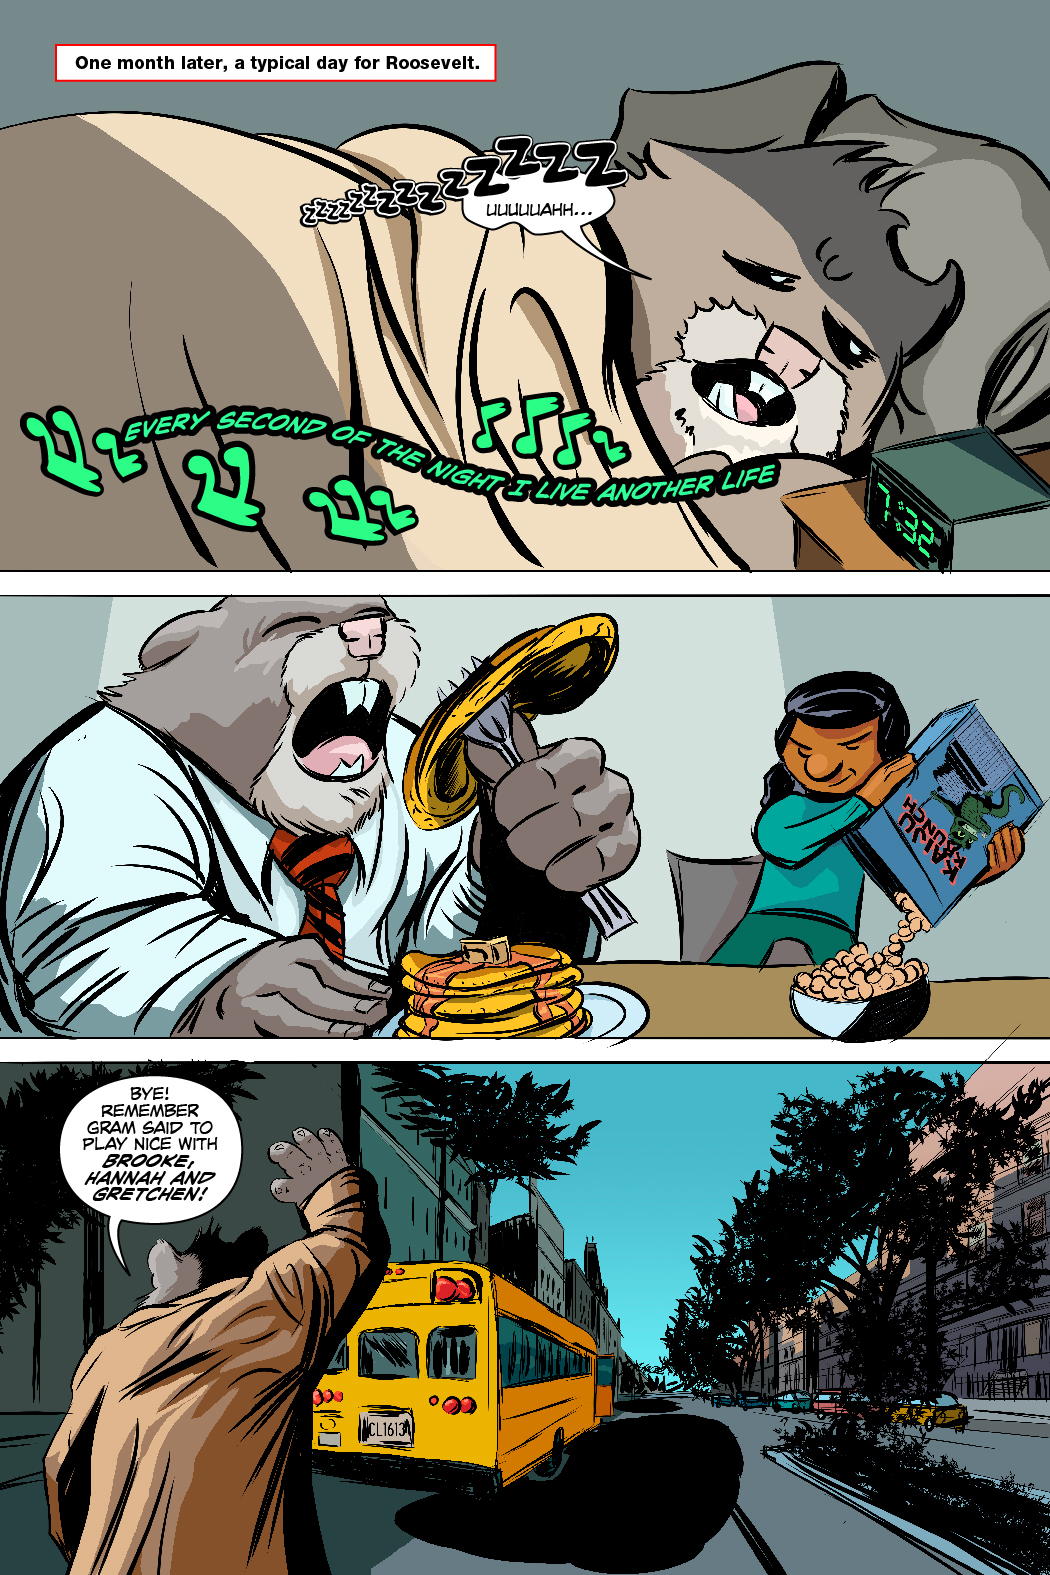 PAGE 78 Panel 1. One month later, a day in the life. Roosevelt is waking up. 1 CAP:  One month later, a typical day for Roosevelt. ROOSEVELT: ZZZZZZ... Uuuuaaahhh... SFX: Every second of the night I live another life Panel 2. Shayna, Gram and Roosevelt eating breakfast.  Panel 3. Roosevelt waves goodbye to Shayna as the bus pulls away. ROOSEVELT: Bye! Remember Gram said to play nice with Brooke, Hannah and Gretchen!